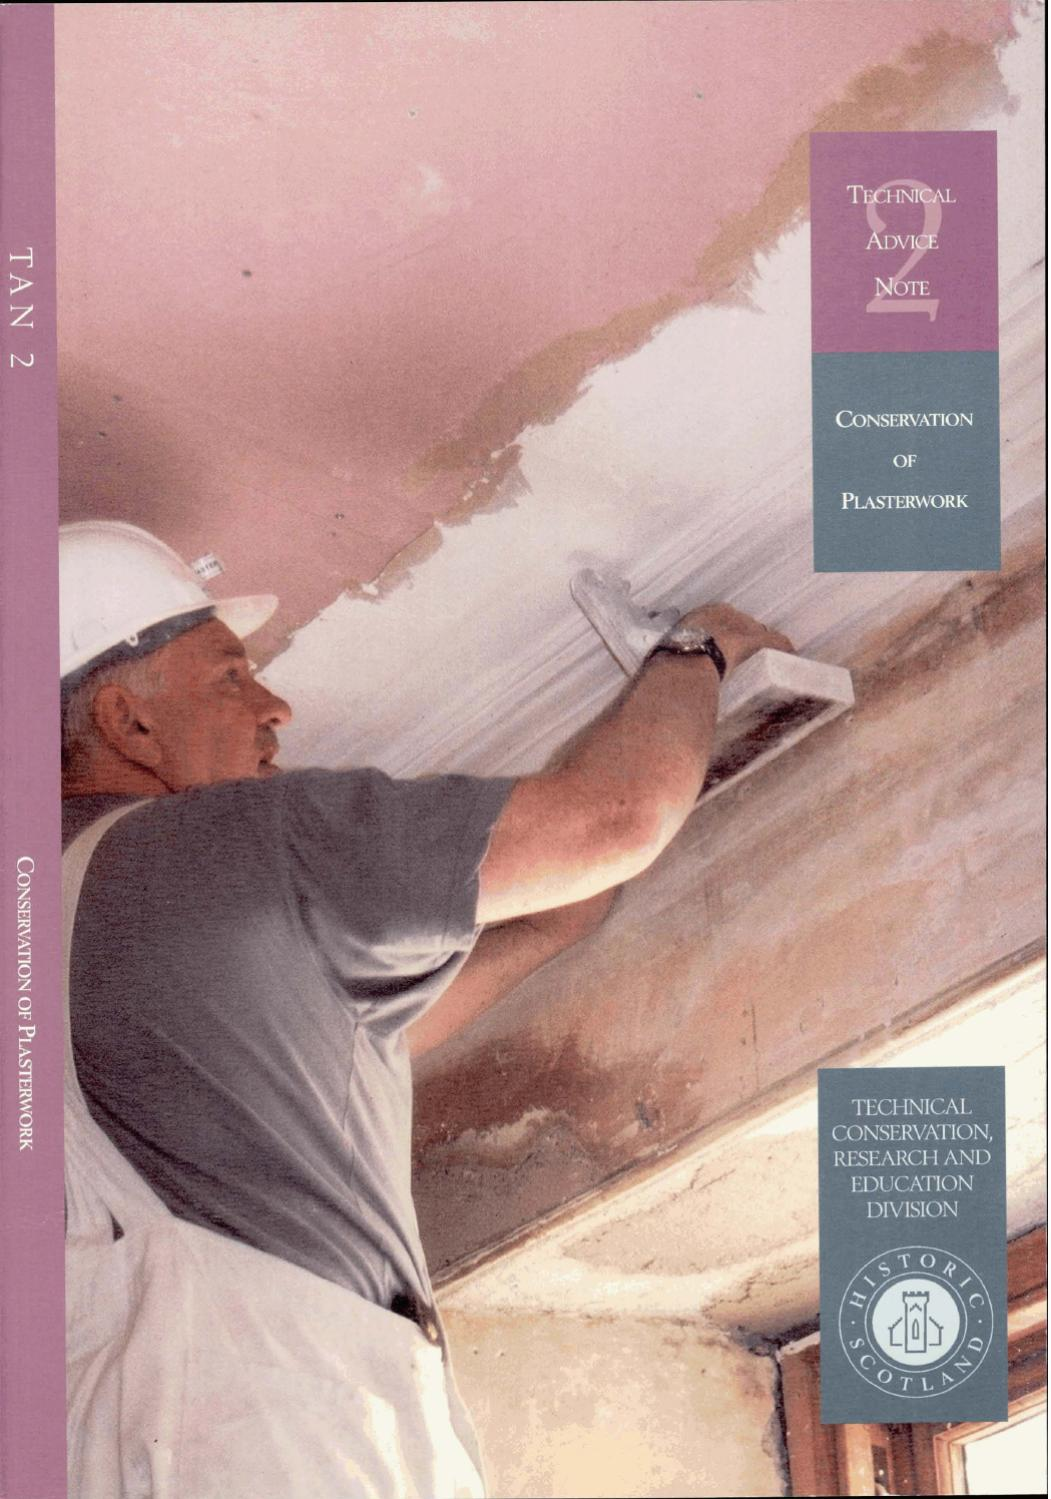 TAN 02- CONSERVATION OF PLASTERWORK (2) by Historic